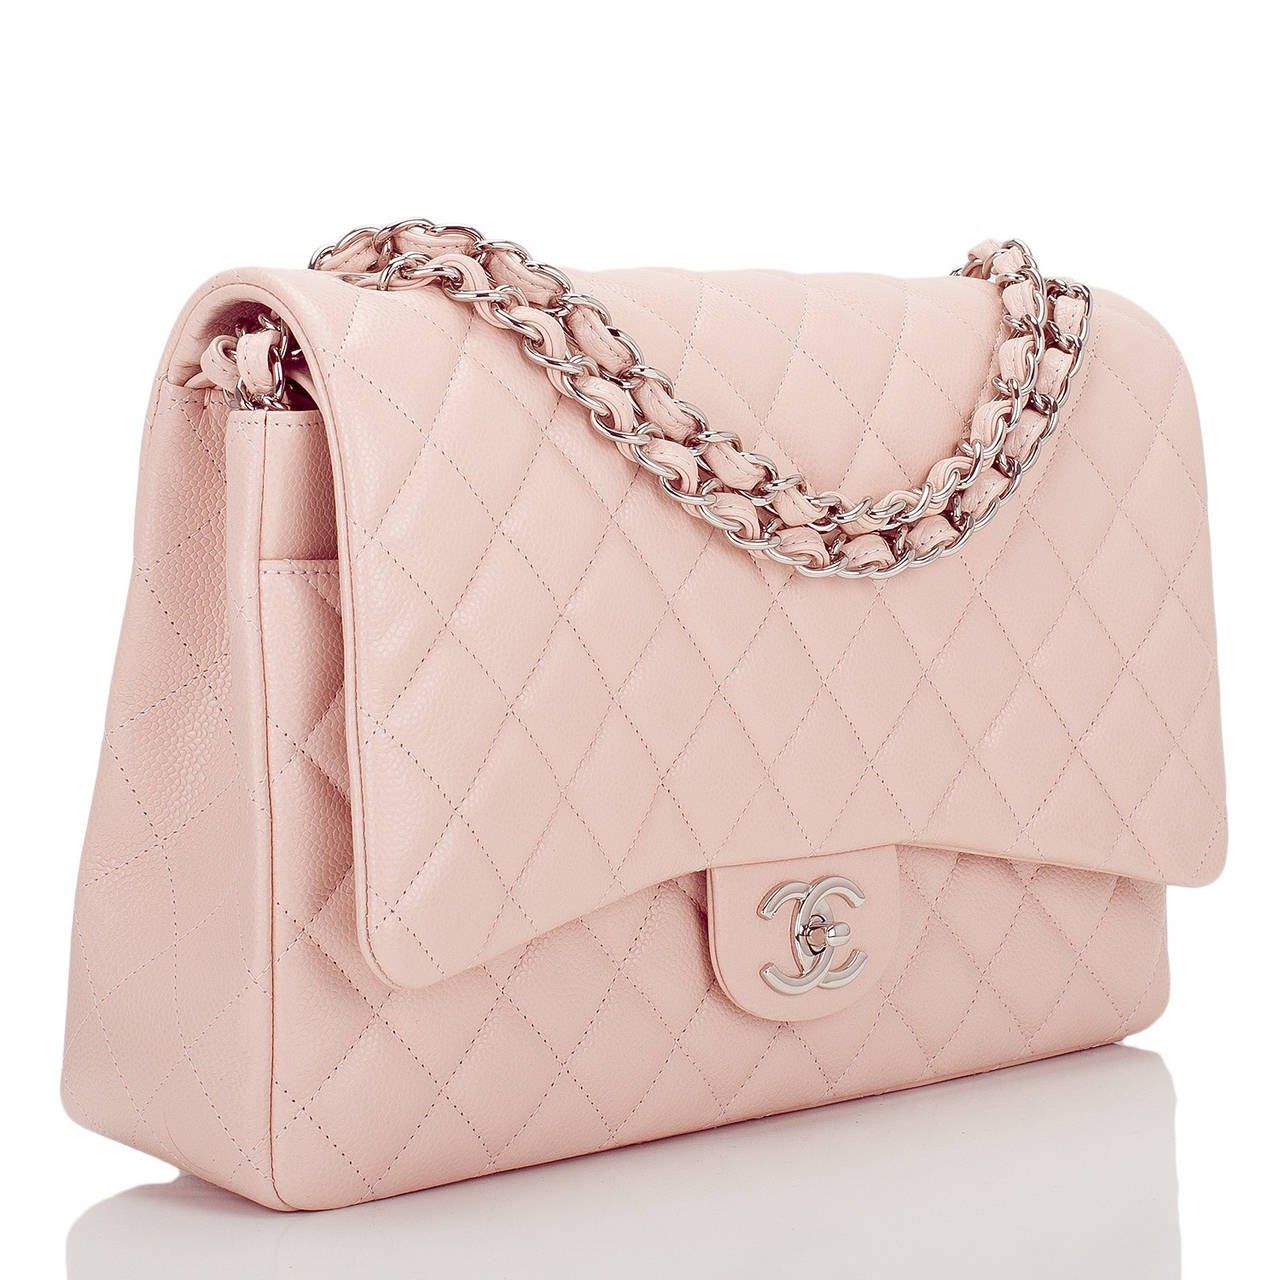 This limited edition Chanel Maxi Classic double flap bag of light pink quilted caviar leather features a front flap with signature CC turnlock closure, half moon back pocket and an adjustable interwoven silver tone chain link and pink leather